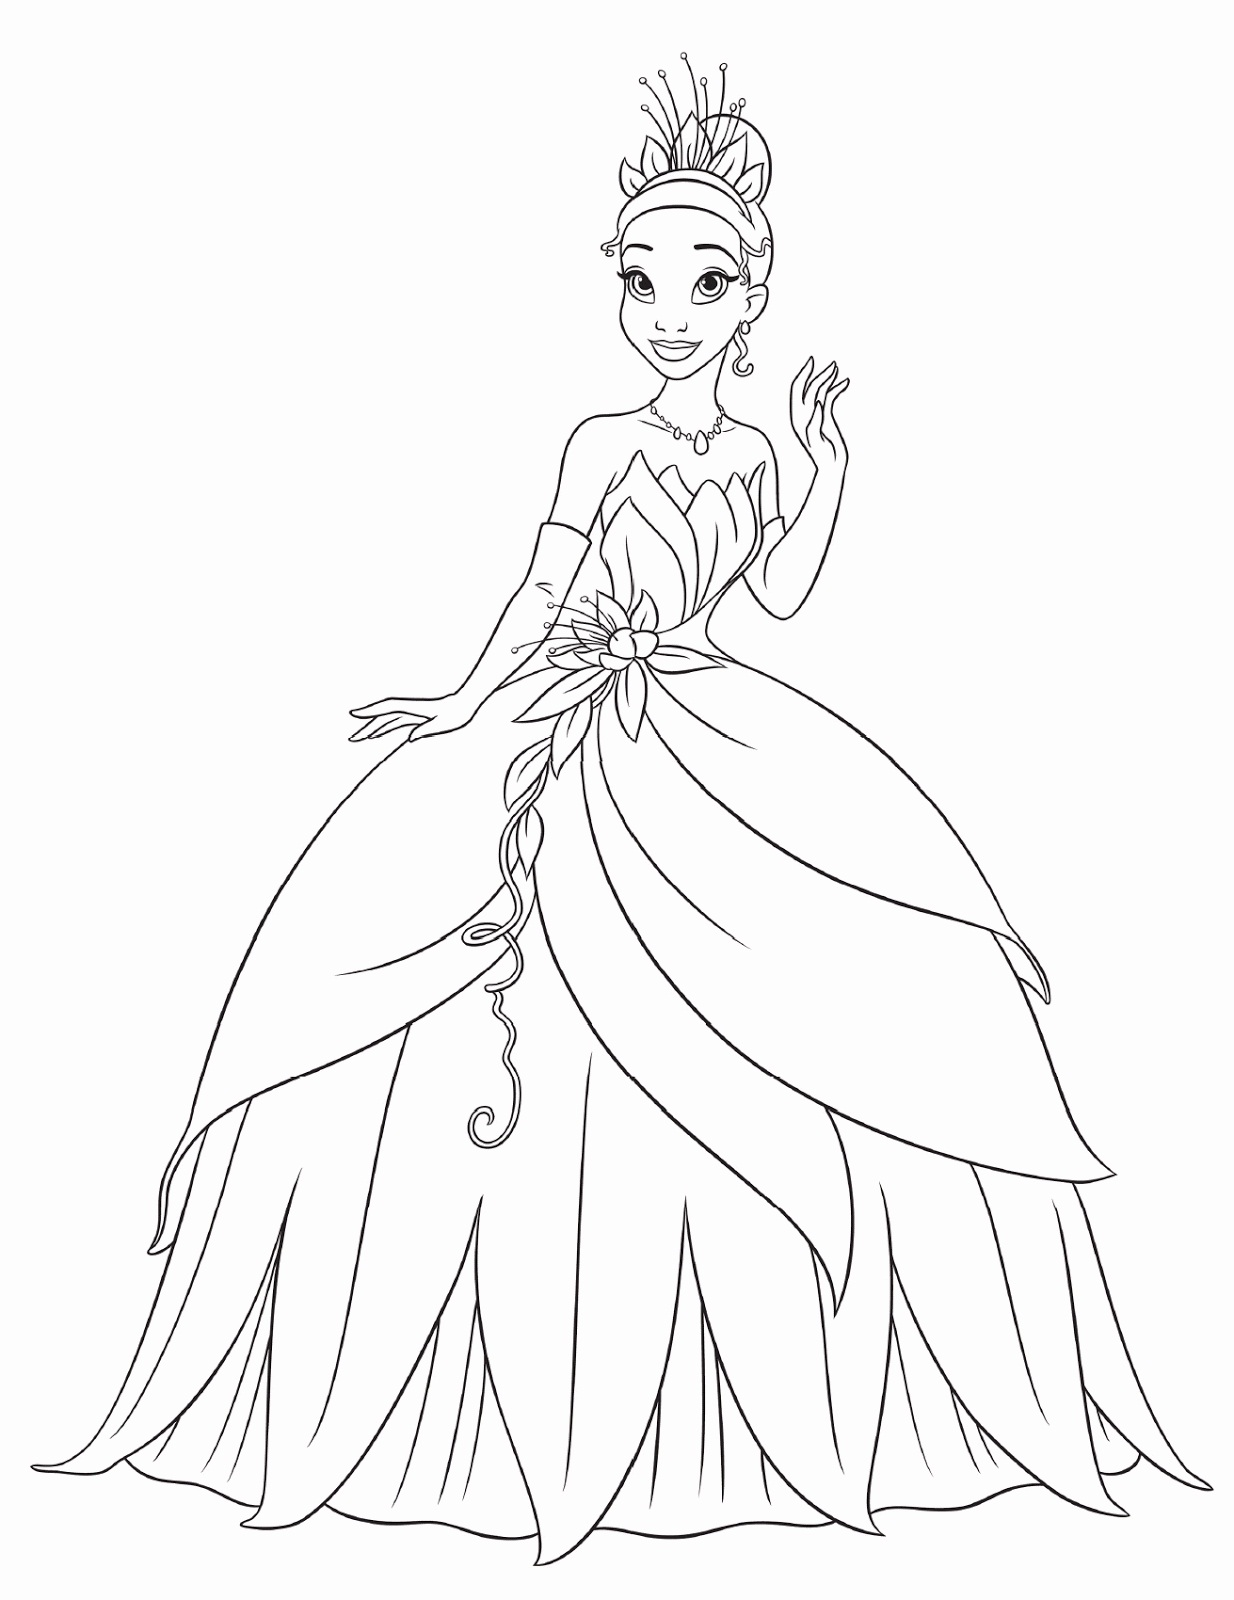 Free Printable Princess Tiana Coloring Pages For Kids Princess Color Page